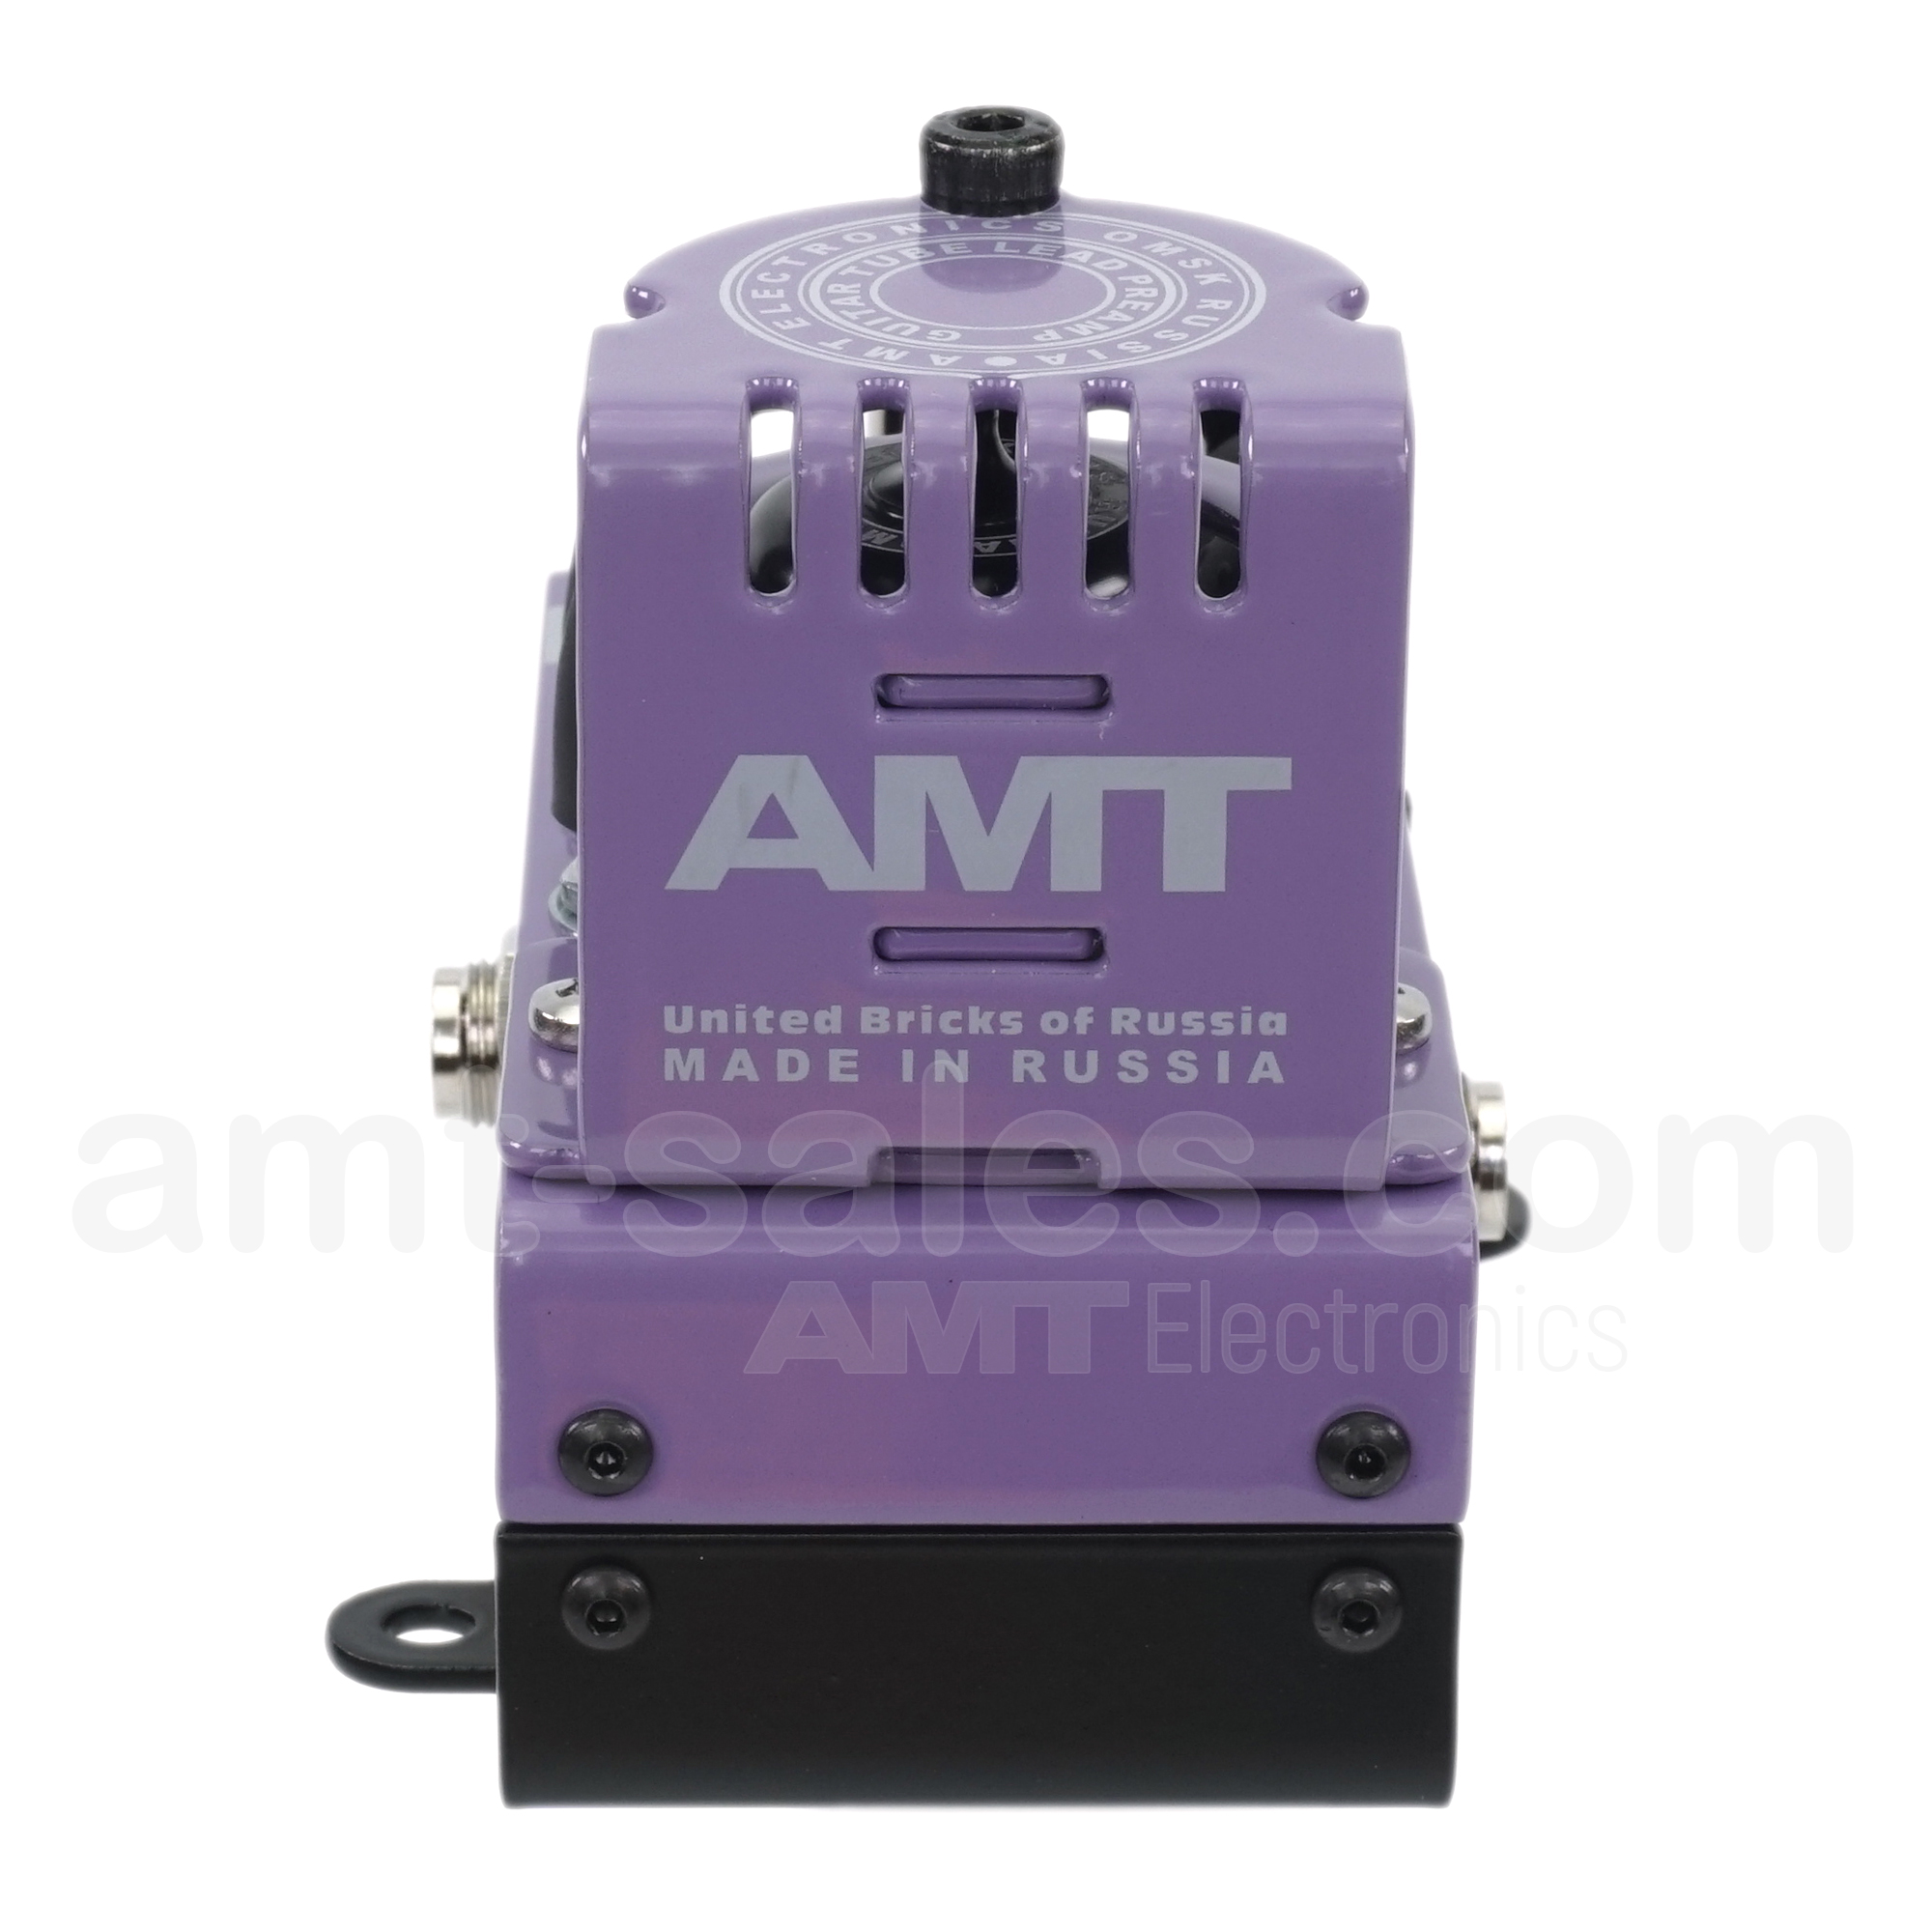 AMT Bricks Vt-Lead - VHT Emulates